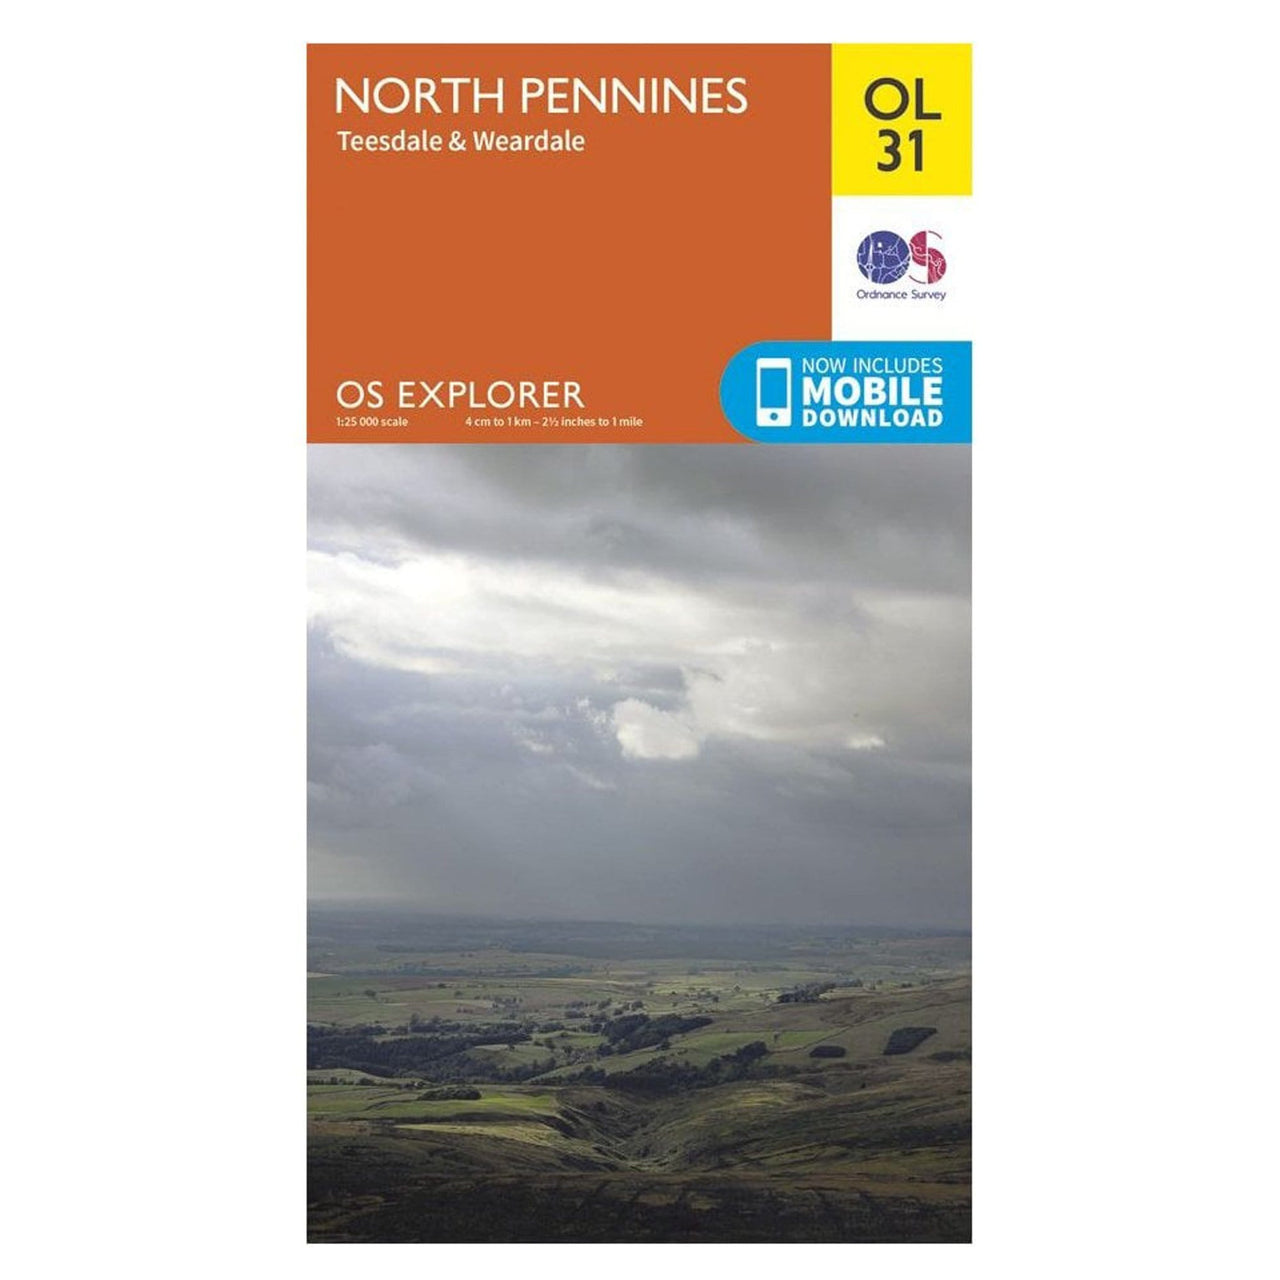 OS Explorer Maps: North Pennines - Teesdale and Weardale